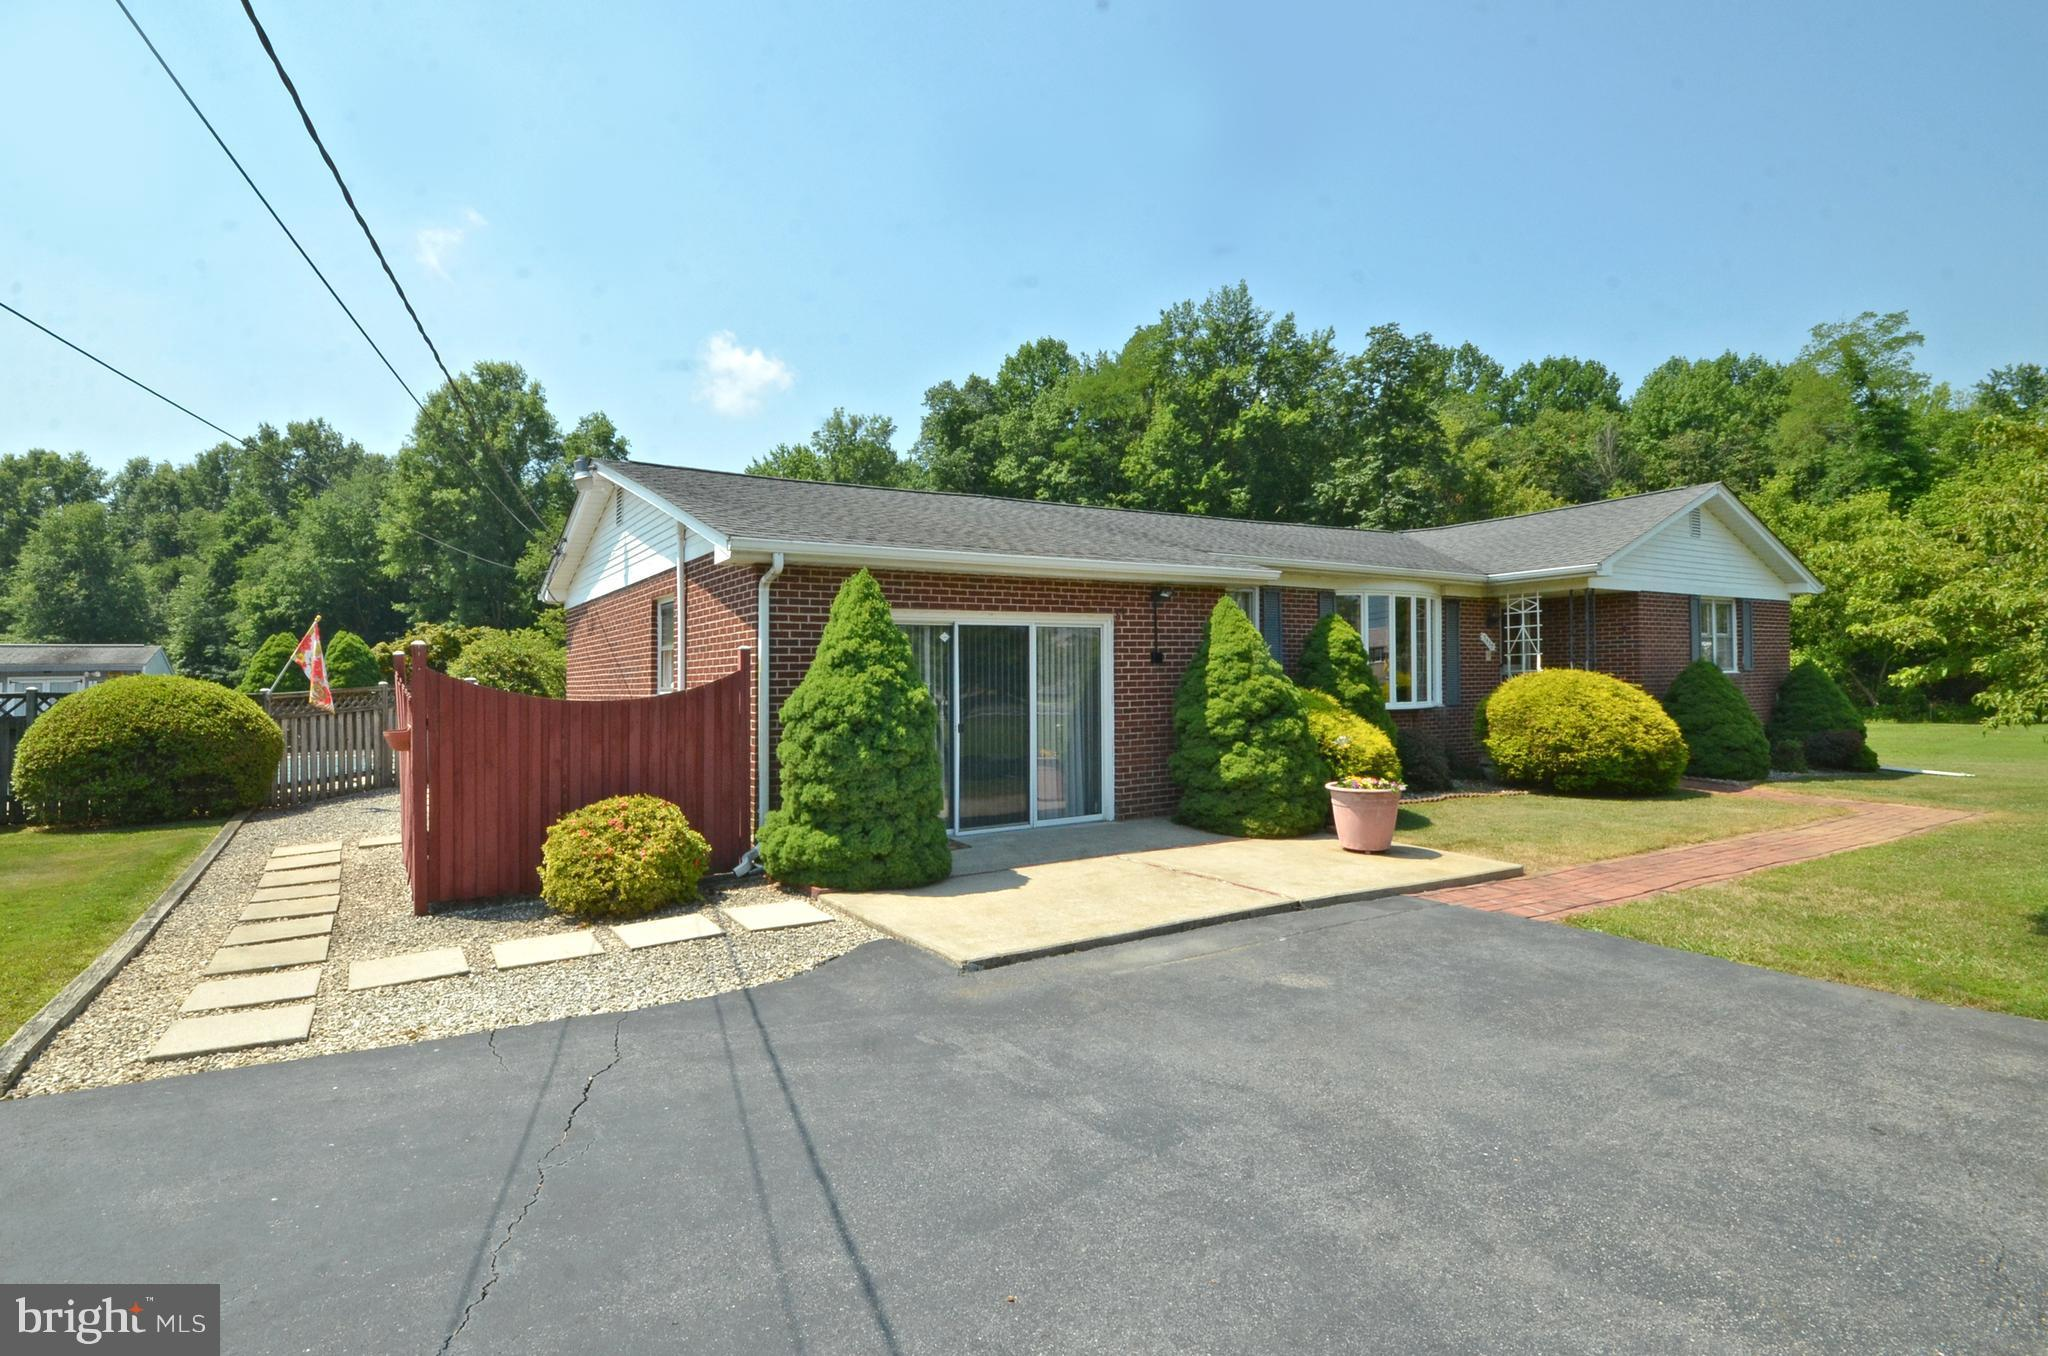 3437 ALDINO ROAD, CHURCHVILLE, MD 21028